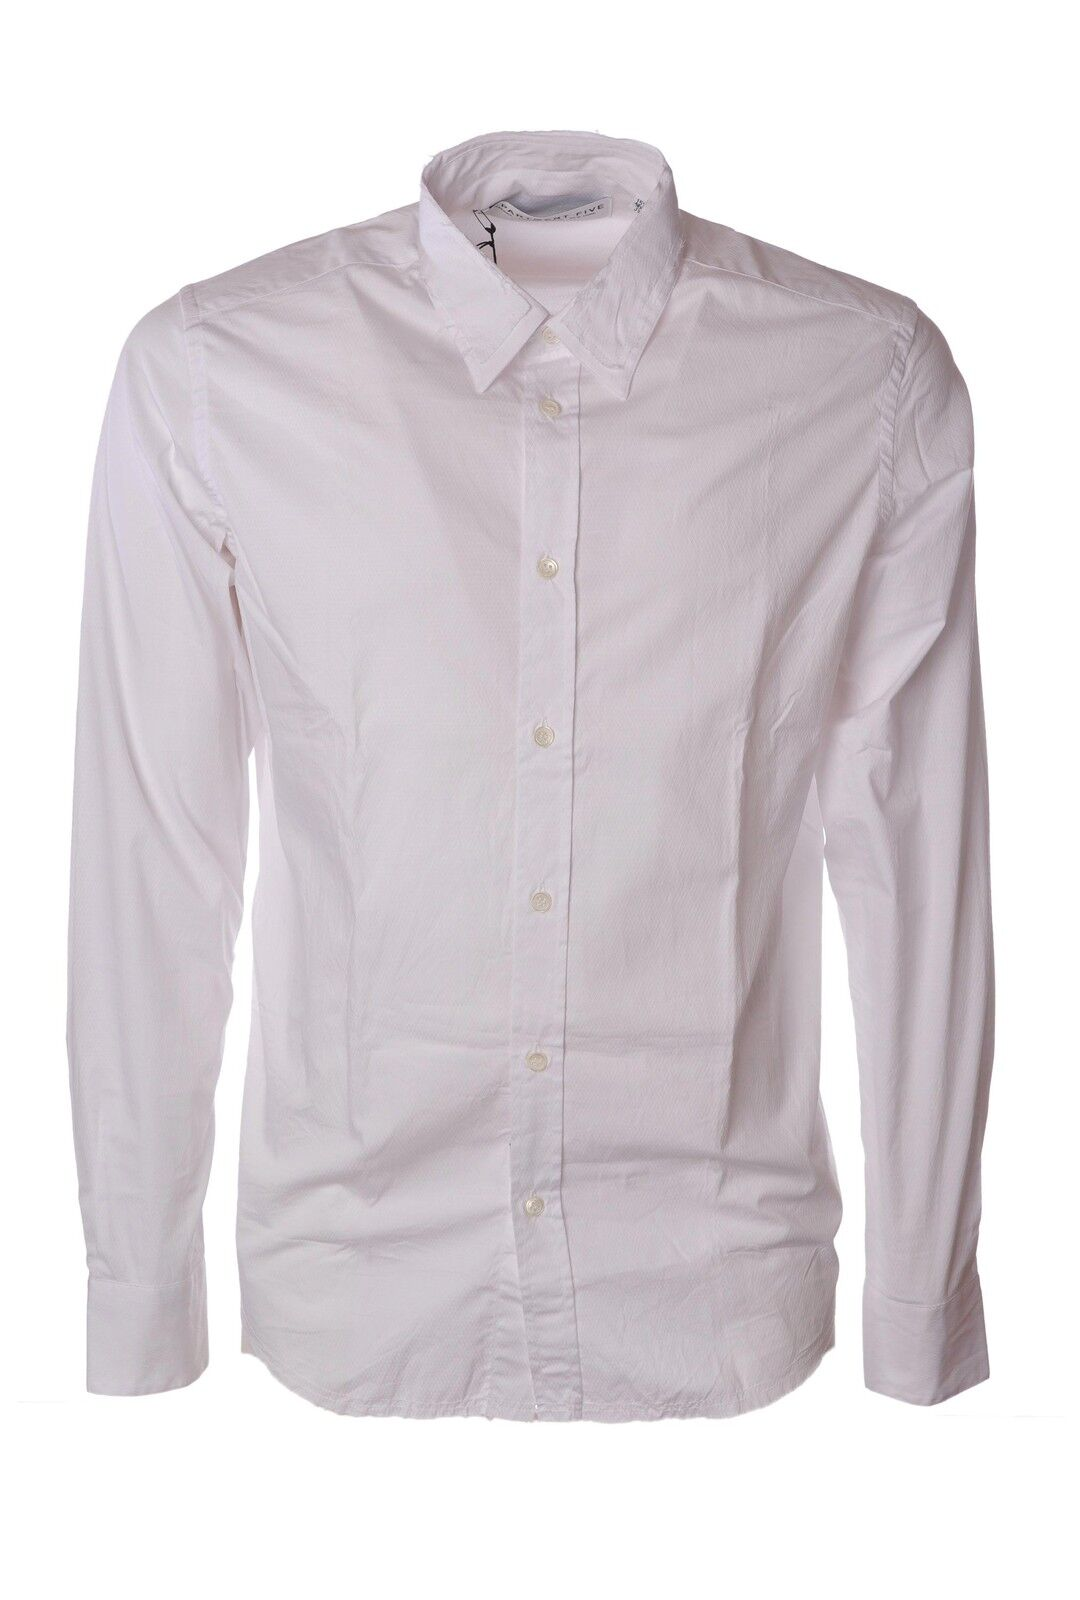 Department 5  -  Shirts - Male - Weiß - 3811529A184737